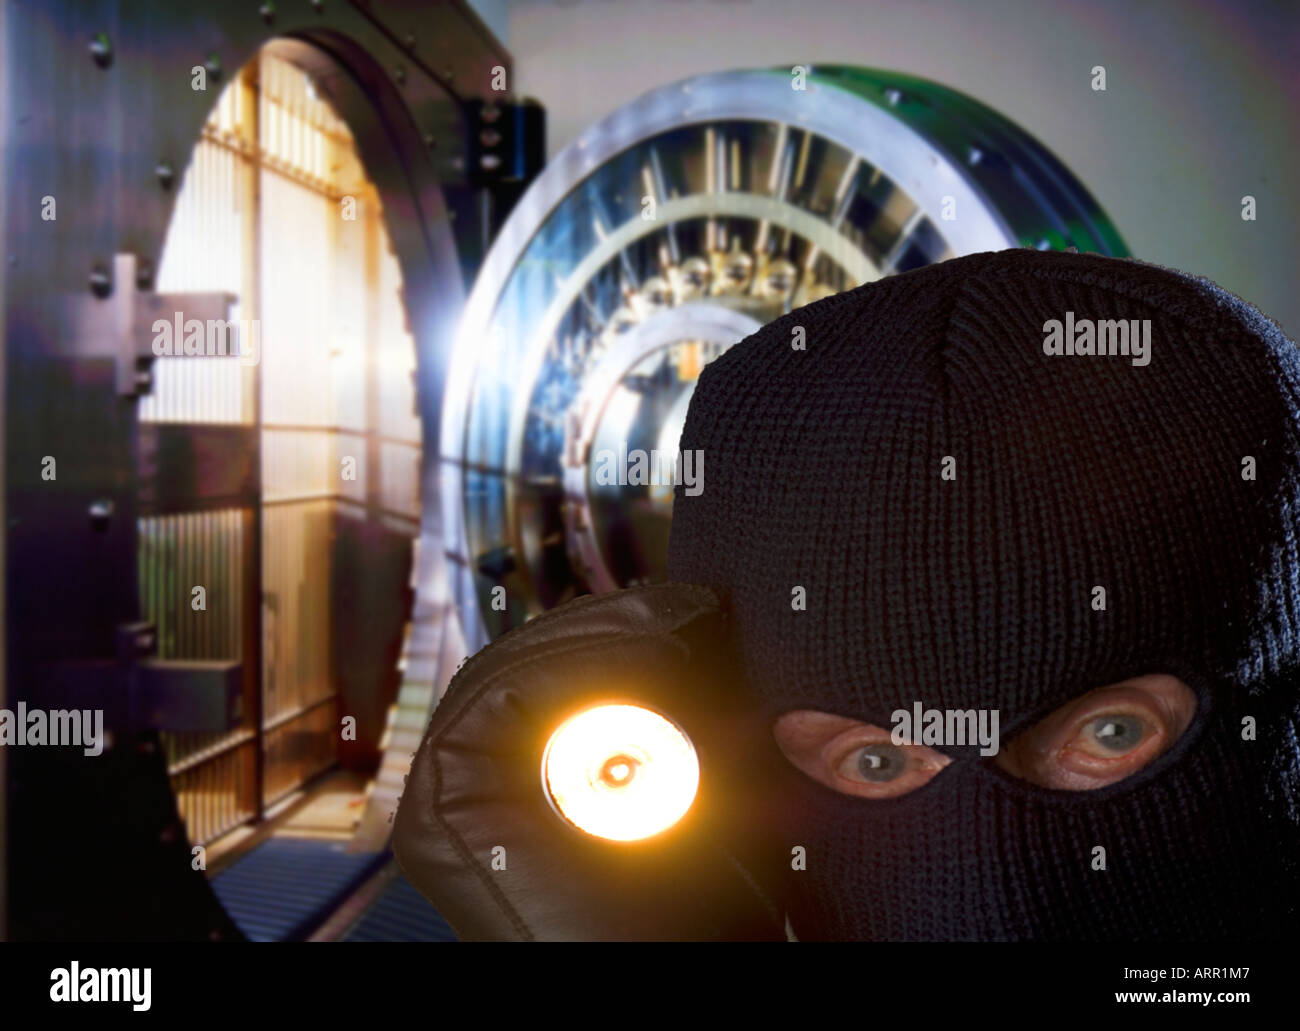 bank robber with ski mask and flashlight in bank vault - Stock Image